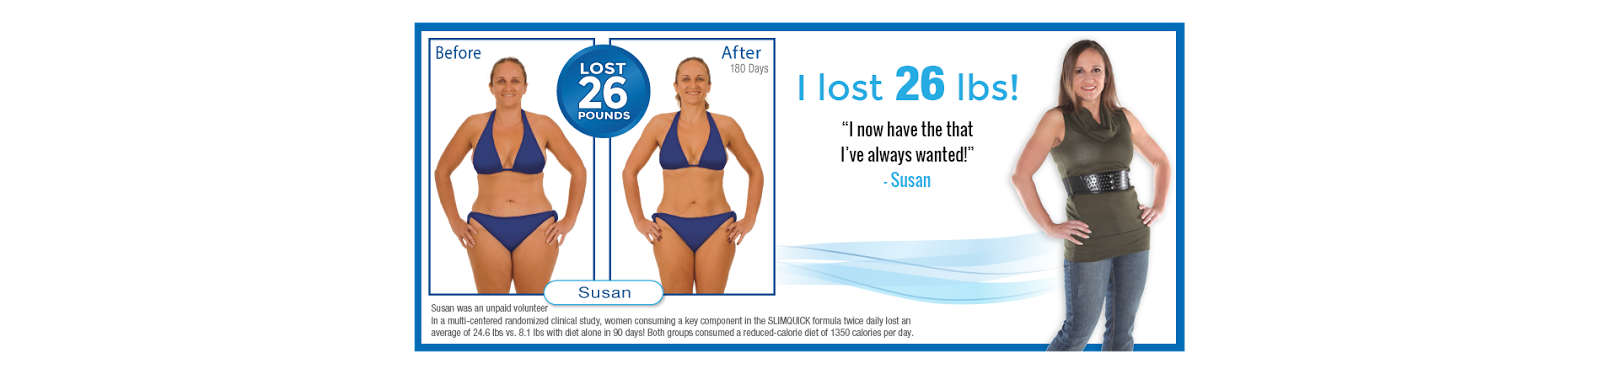 Have water consumption weight loss calculator you eliminate